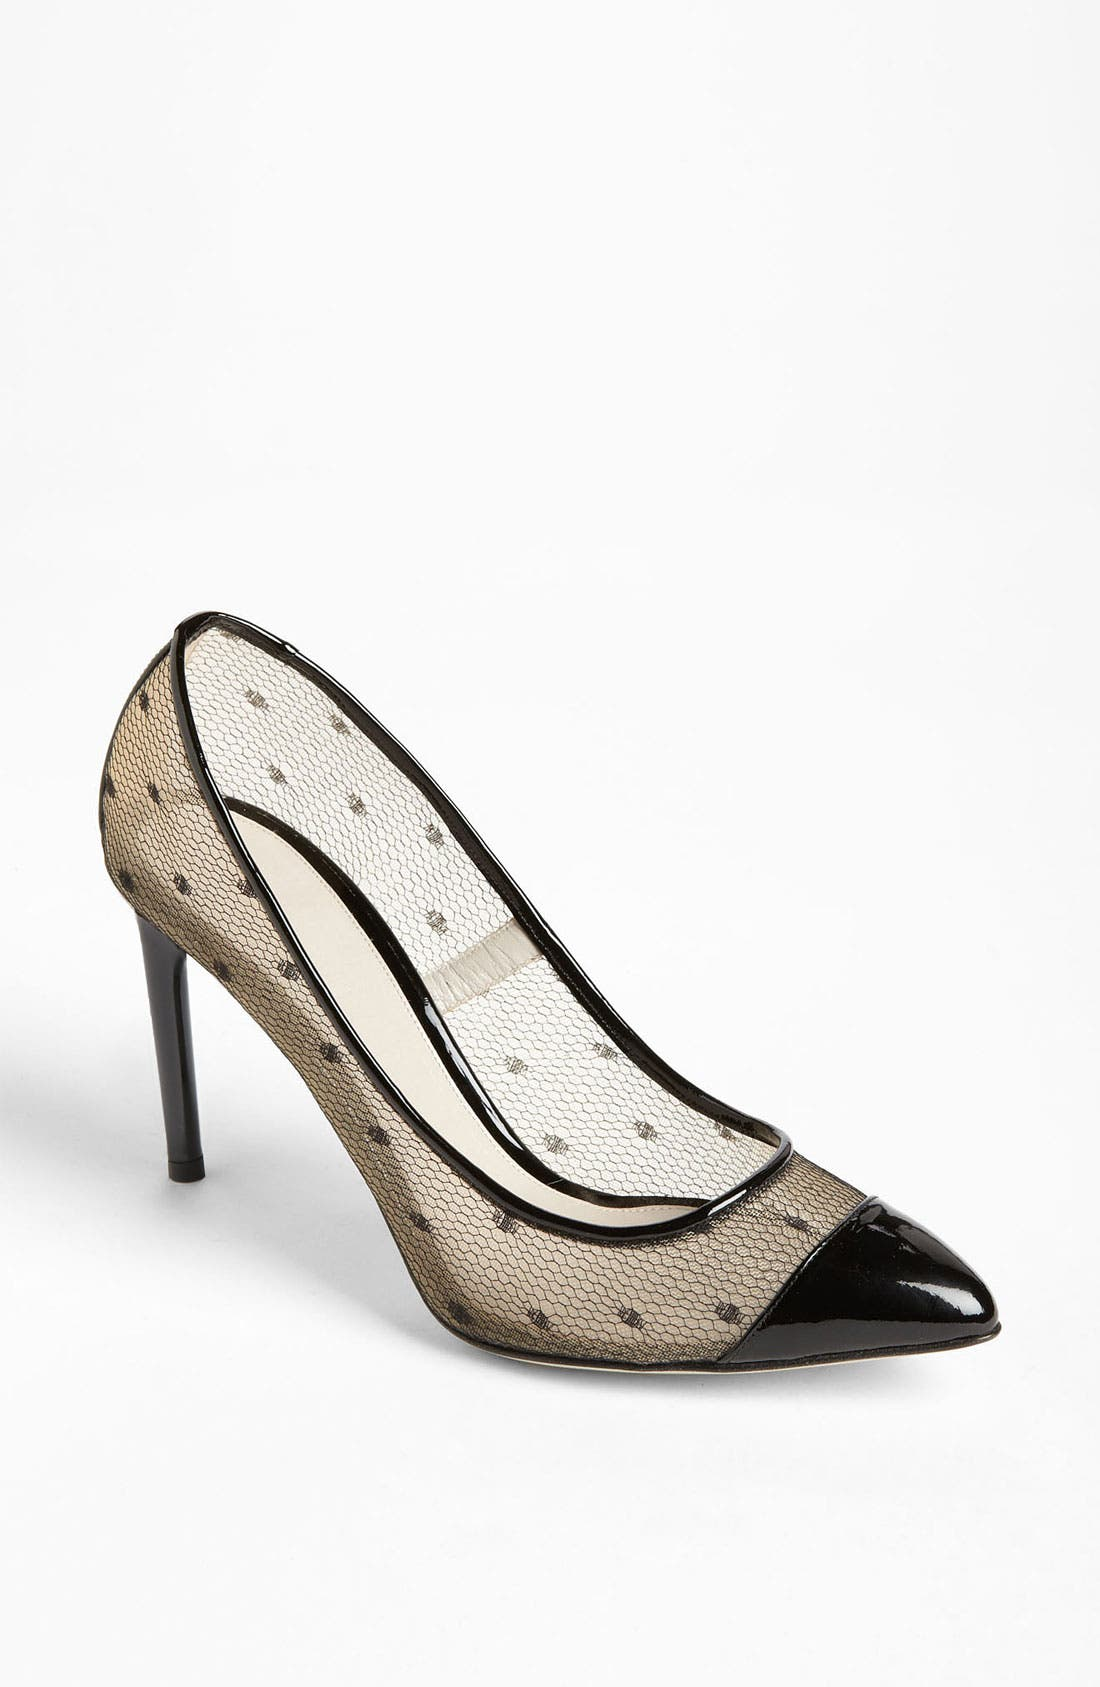 Main Image - Jason Wu 'Dovima' Pump